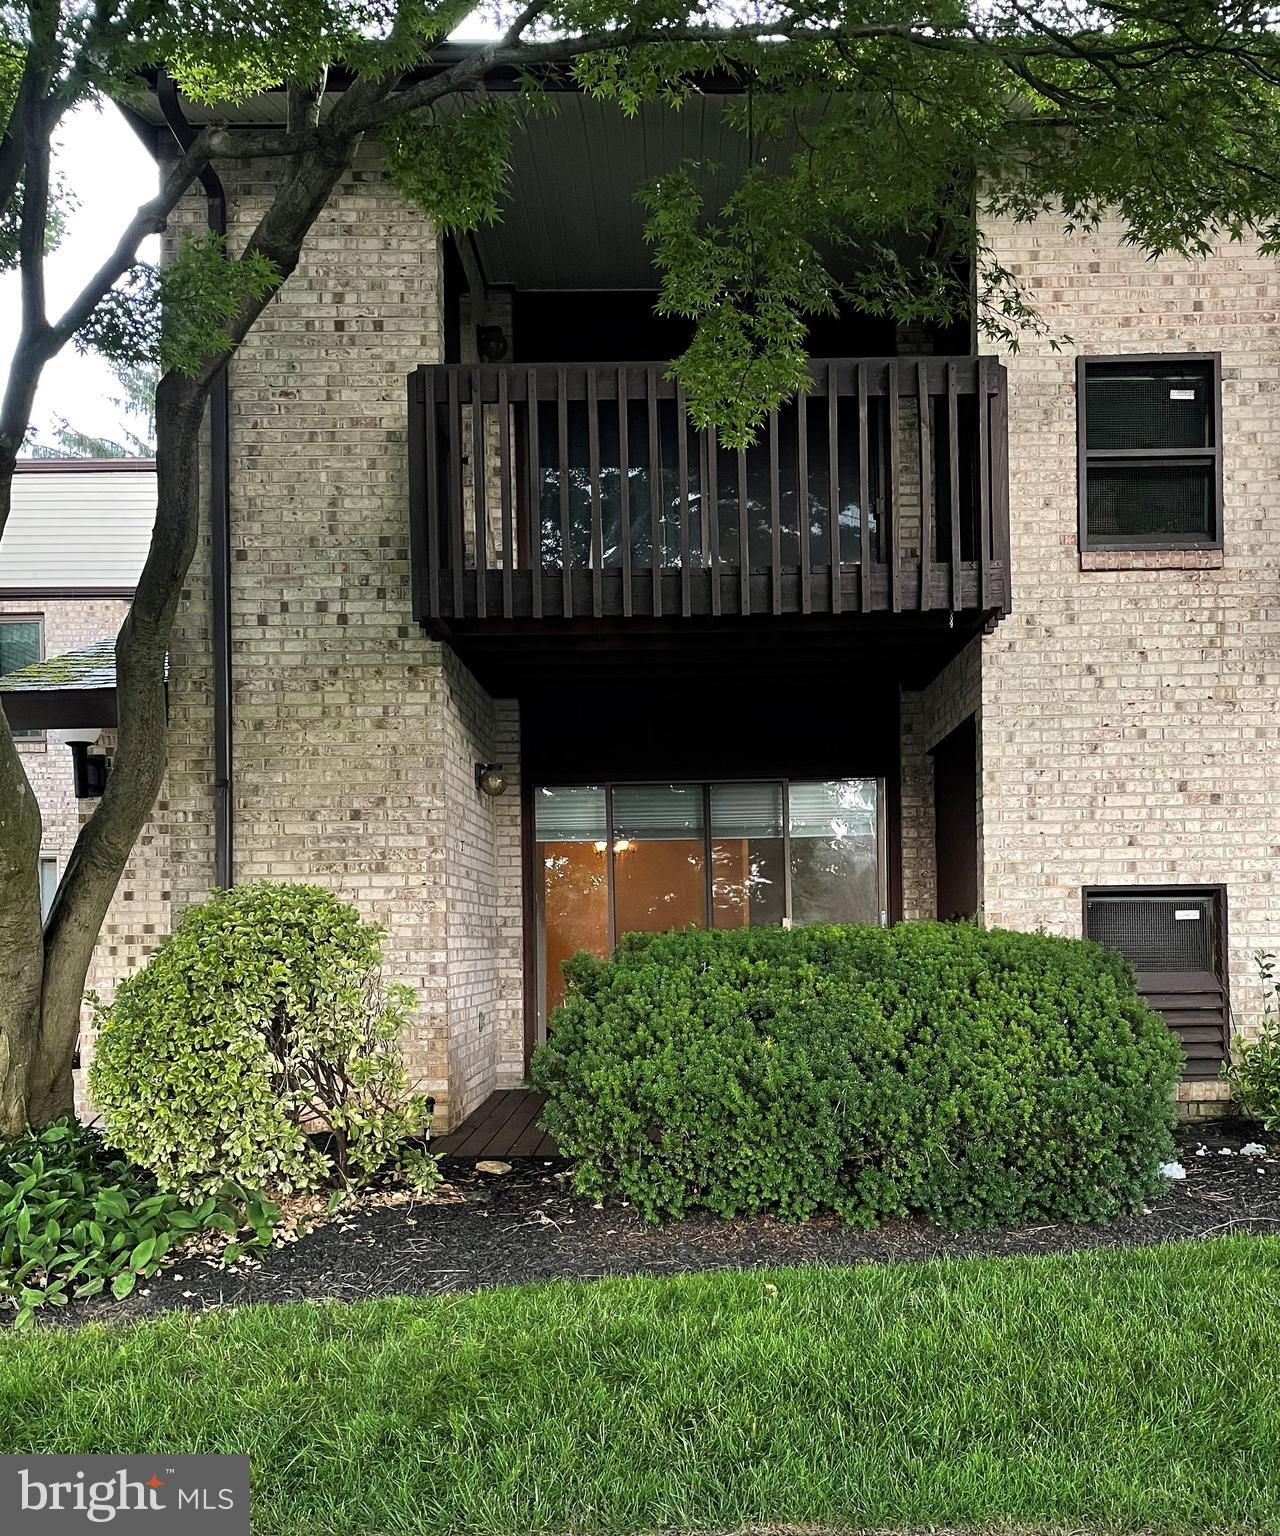 Wonderful first floor Condo in Great Valley School District, Malvern PA. is now on the market! This unit is just steps away from parking for convenience, and has a private entrance. The first thing to notice is the open Living room and Dining room areas, allowing for plenty of different setups. Off the Living room you will find sliders to the outside deck. Next, the kitchen is well sized and all stainless GE appliances! Good cabinet space and ample counters will make cooking a breeze. The first floor Bedroom is large, features a walk-in closet, and a nice sized window for plenty of natural sunlight. The bathroom is just steps away, but also convenient for guest. The Condo fee includes a full time office and maintenance staff that maintain the heater and AC units, appliances, and a community pool! As an added bonus, your mail gets delivered right to your door. Stop by today and see for yourself all this unit has to offer!